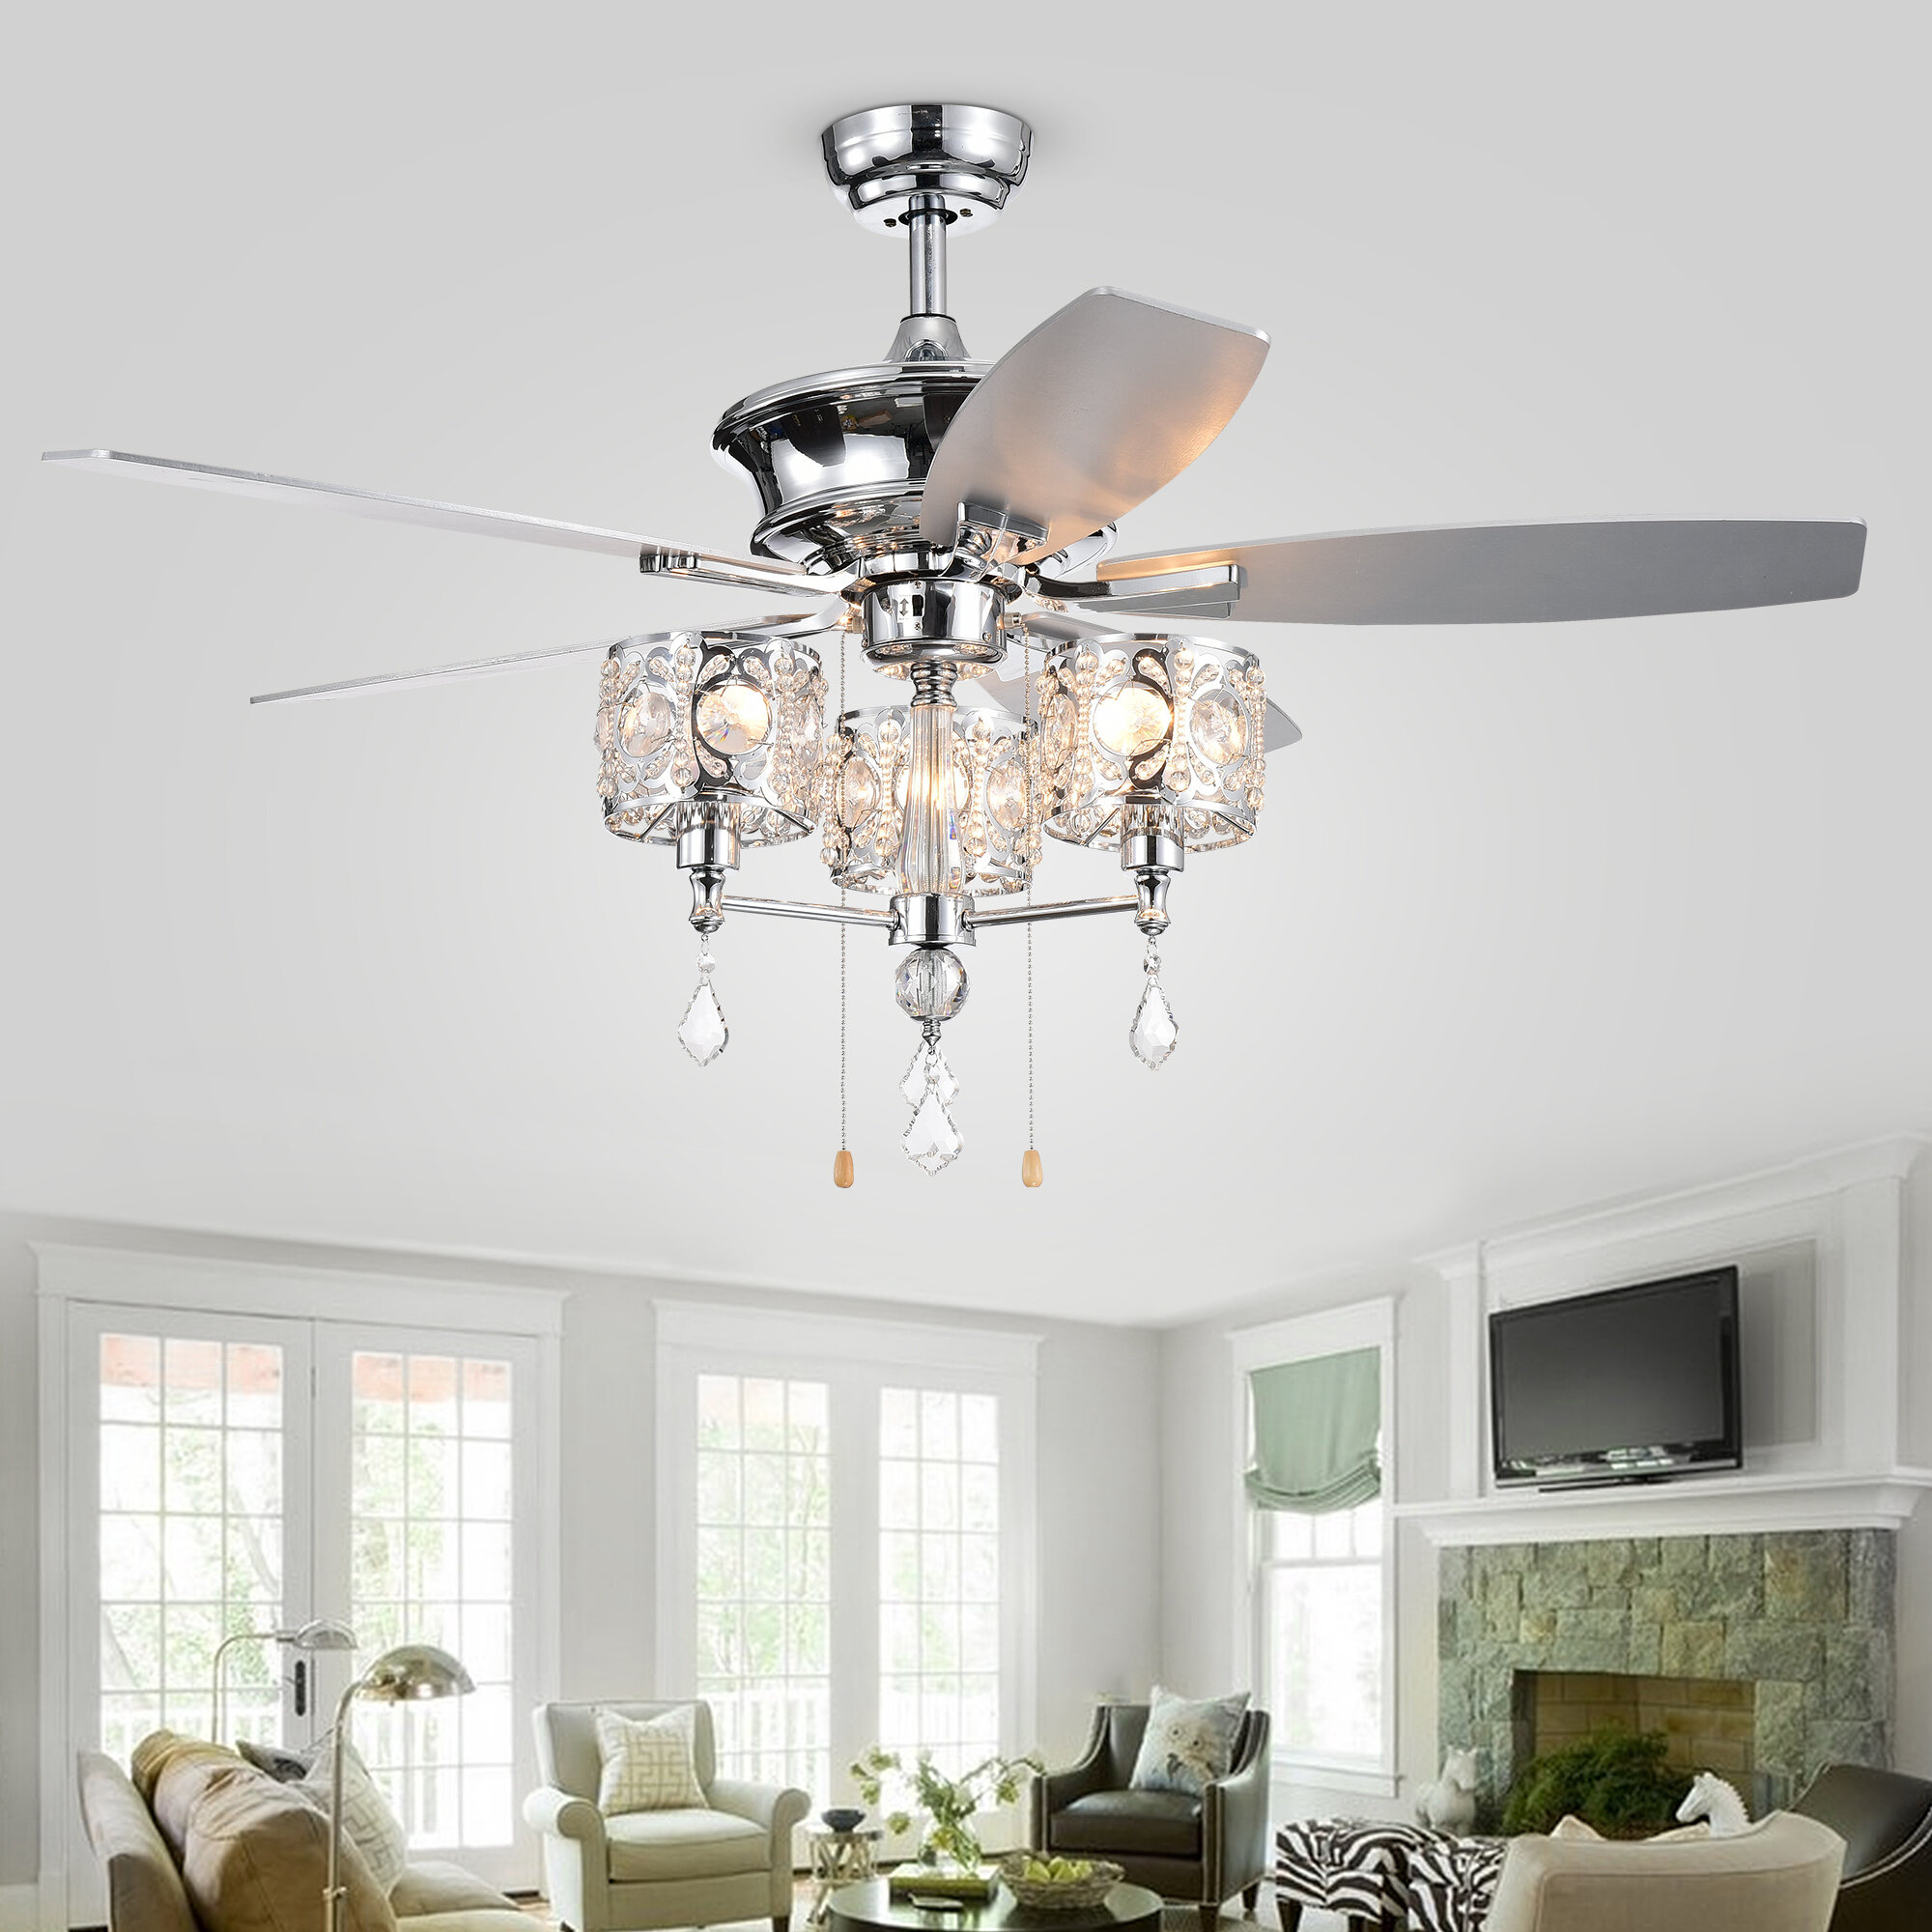 Rosdorf Park Ceiling Fan Light Kit